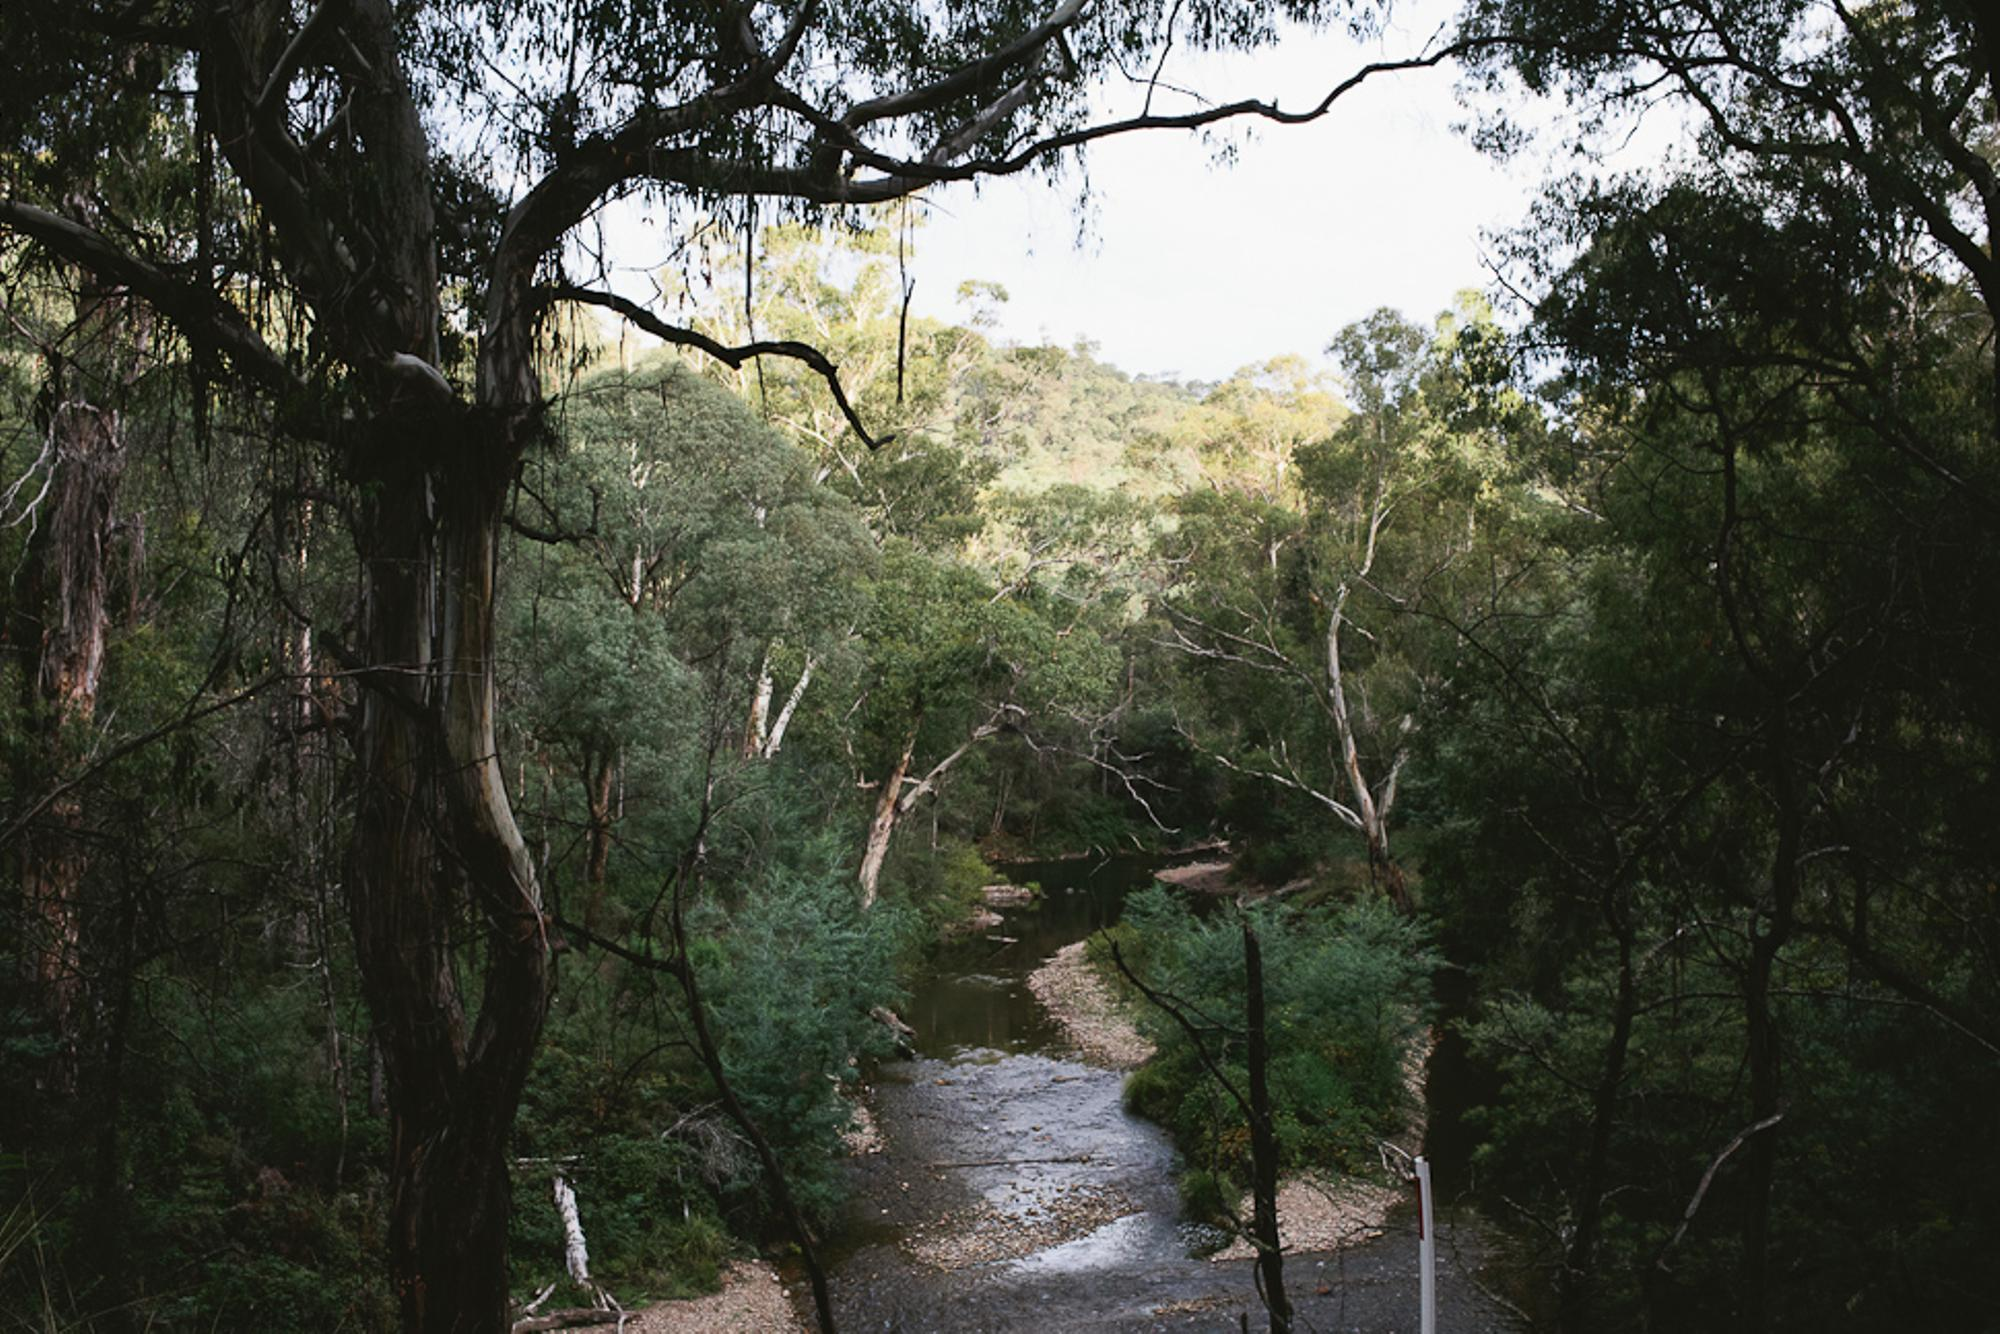 On this river, we saw a flock of Black Cockatoos, my Australian spirit animal. The omens of a solid day.